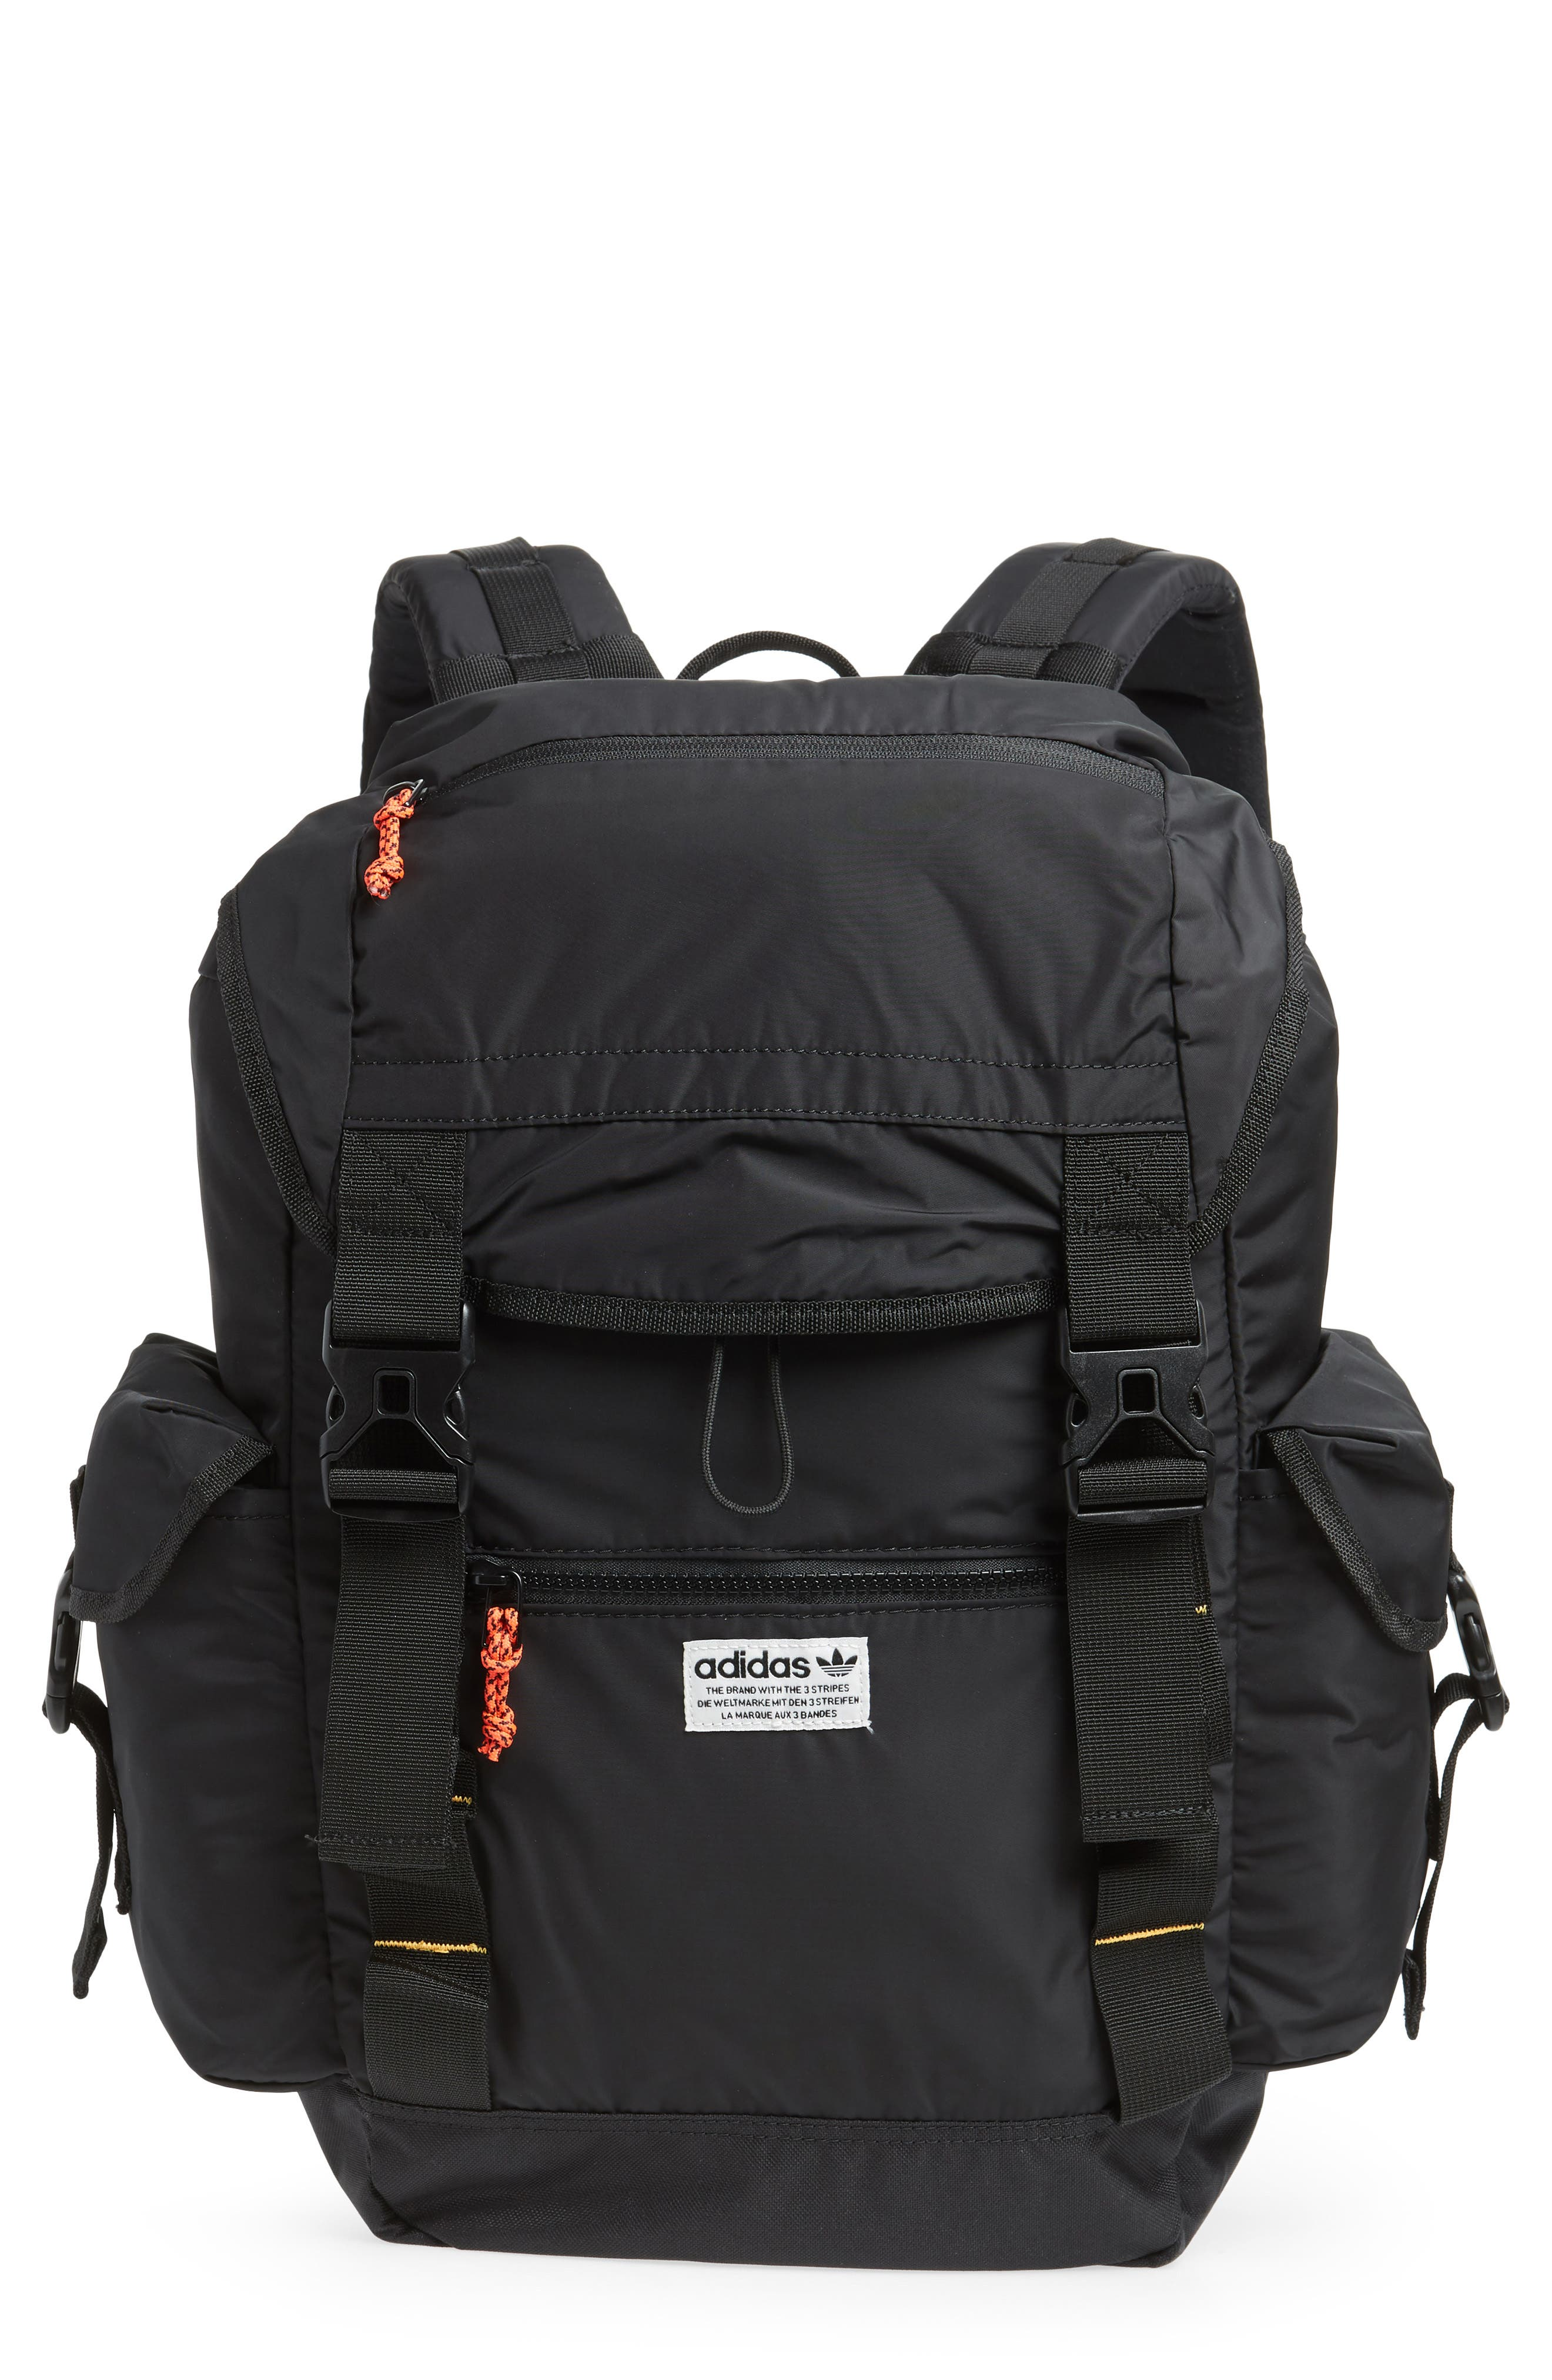 Adidas Originals Urban Utility Backpack - Black